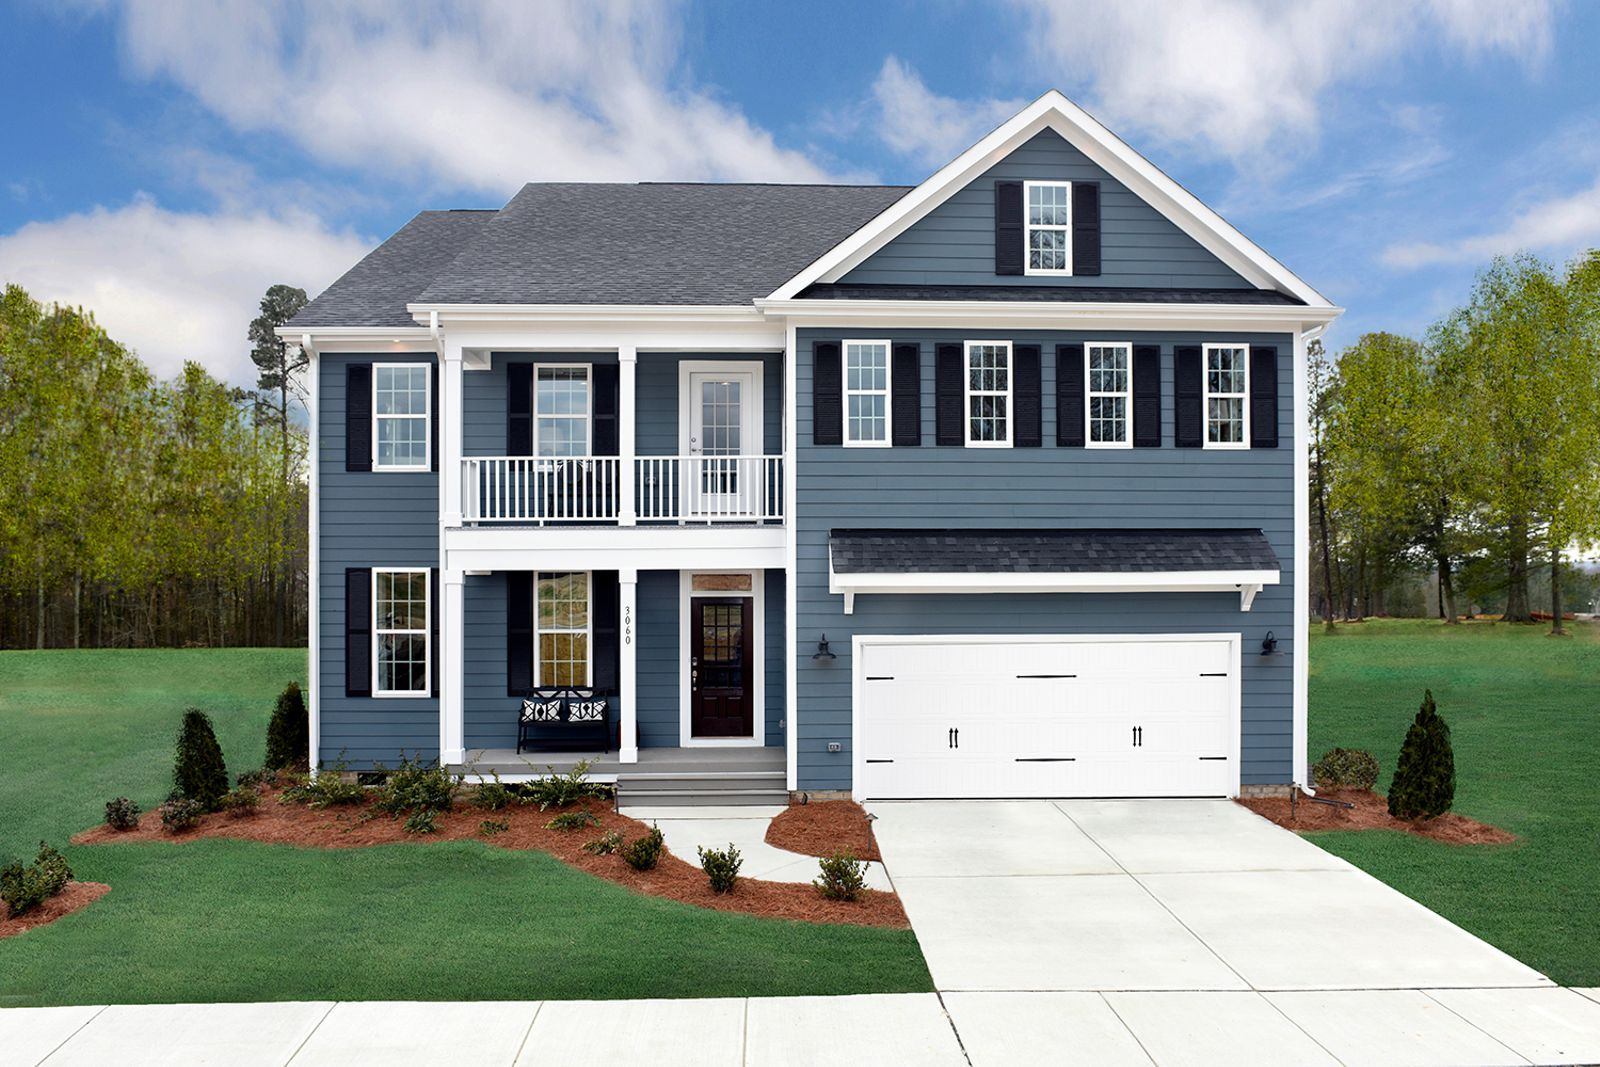 The Preserve at Kitchin Farms Wake Forest NC New Home munity